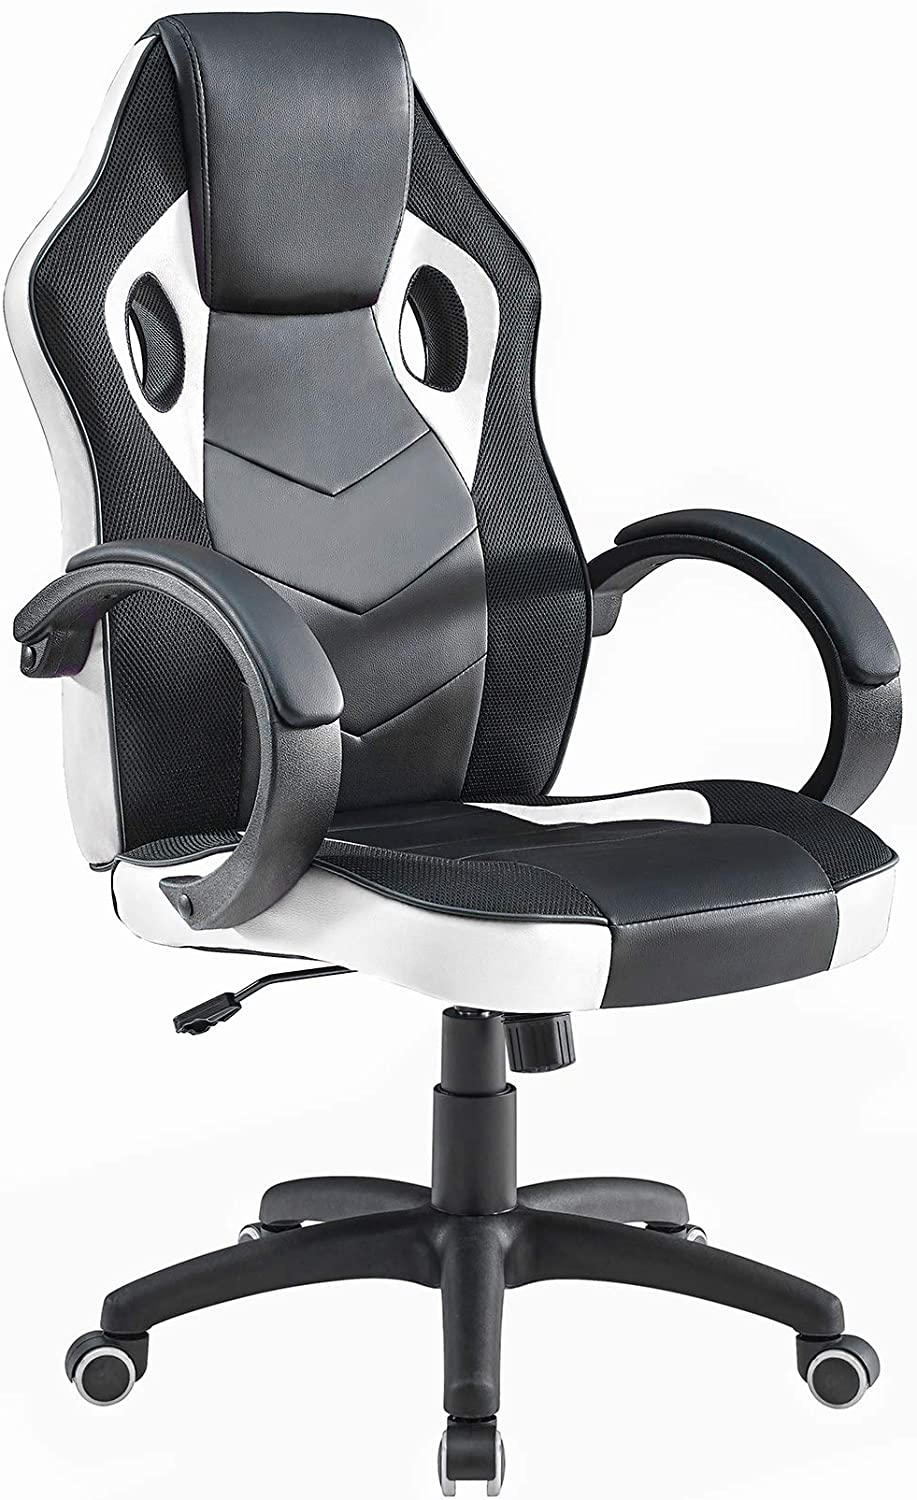 Mr IRONSTONE low profile Gaming Chair